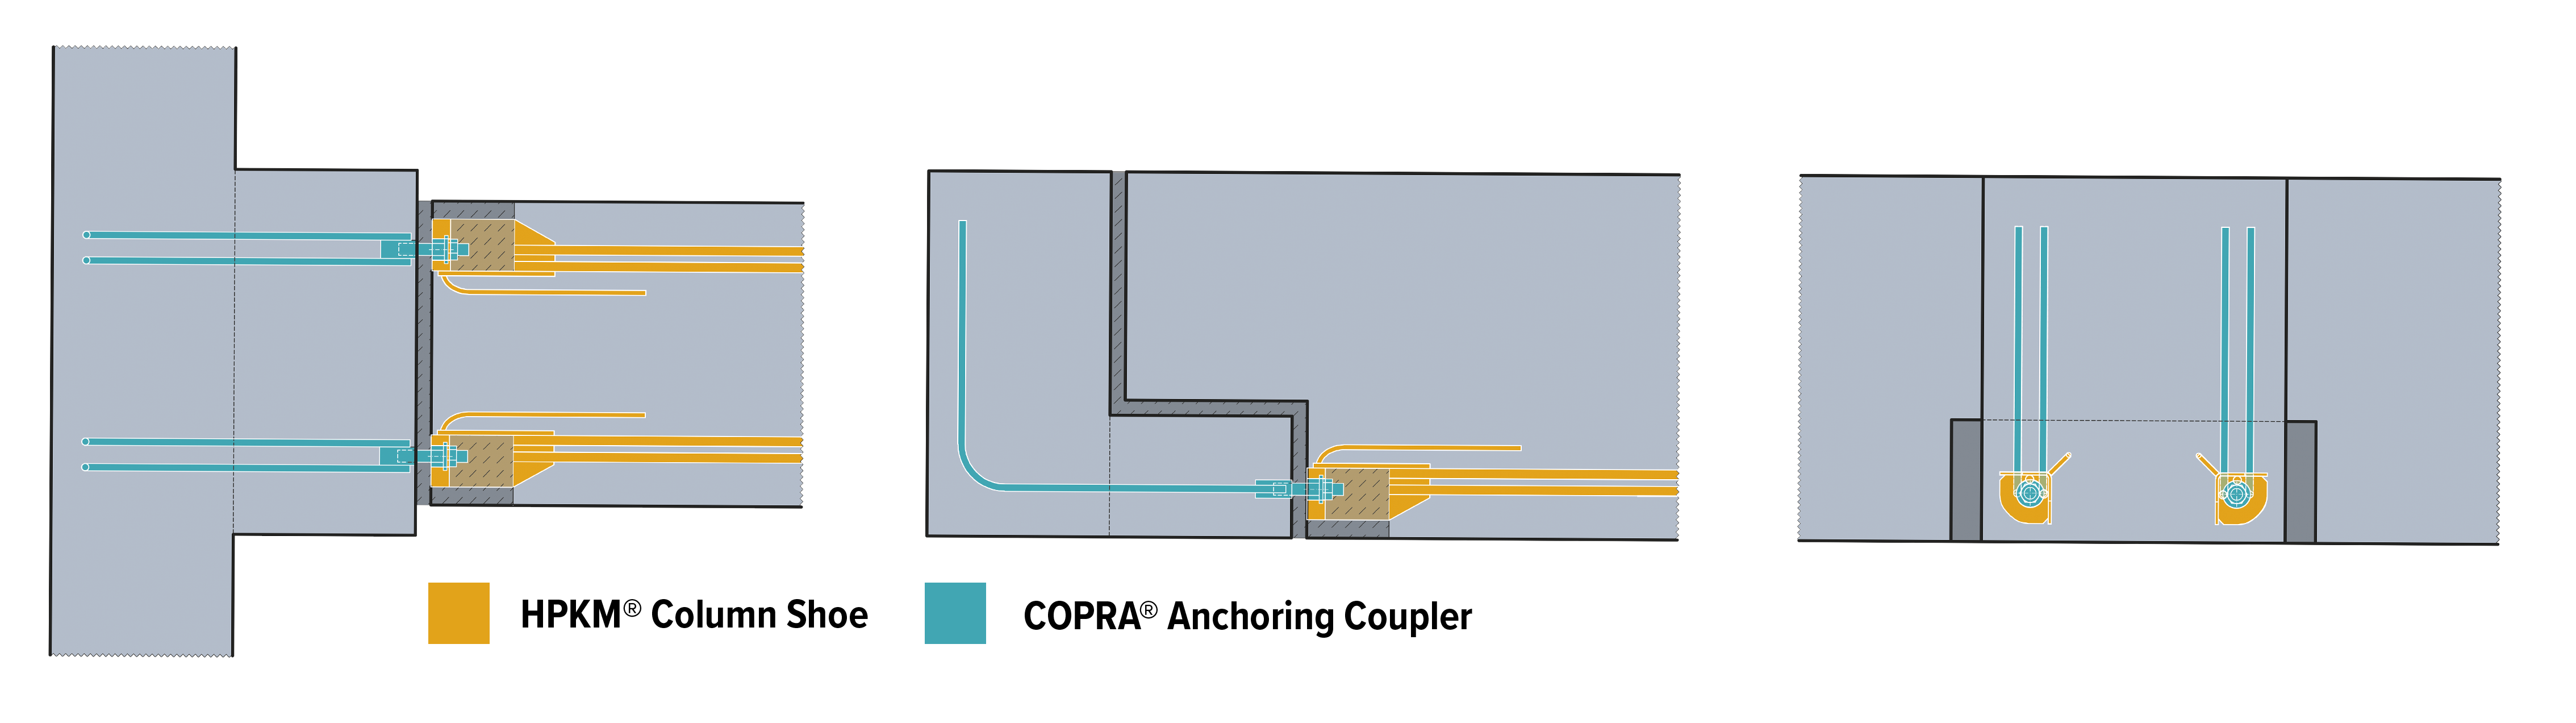 An example of moment resisting connection between primary and secondary beams designed for OMNITURM.